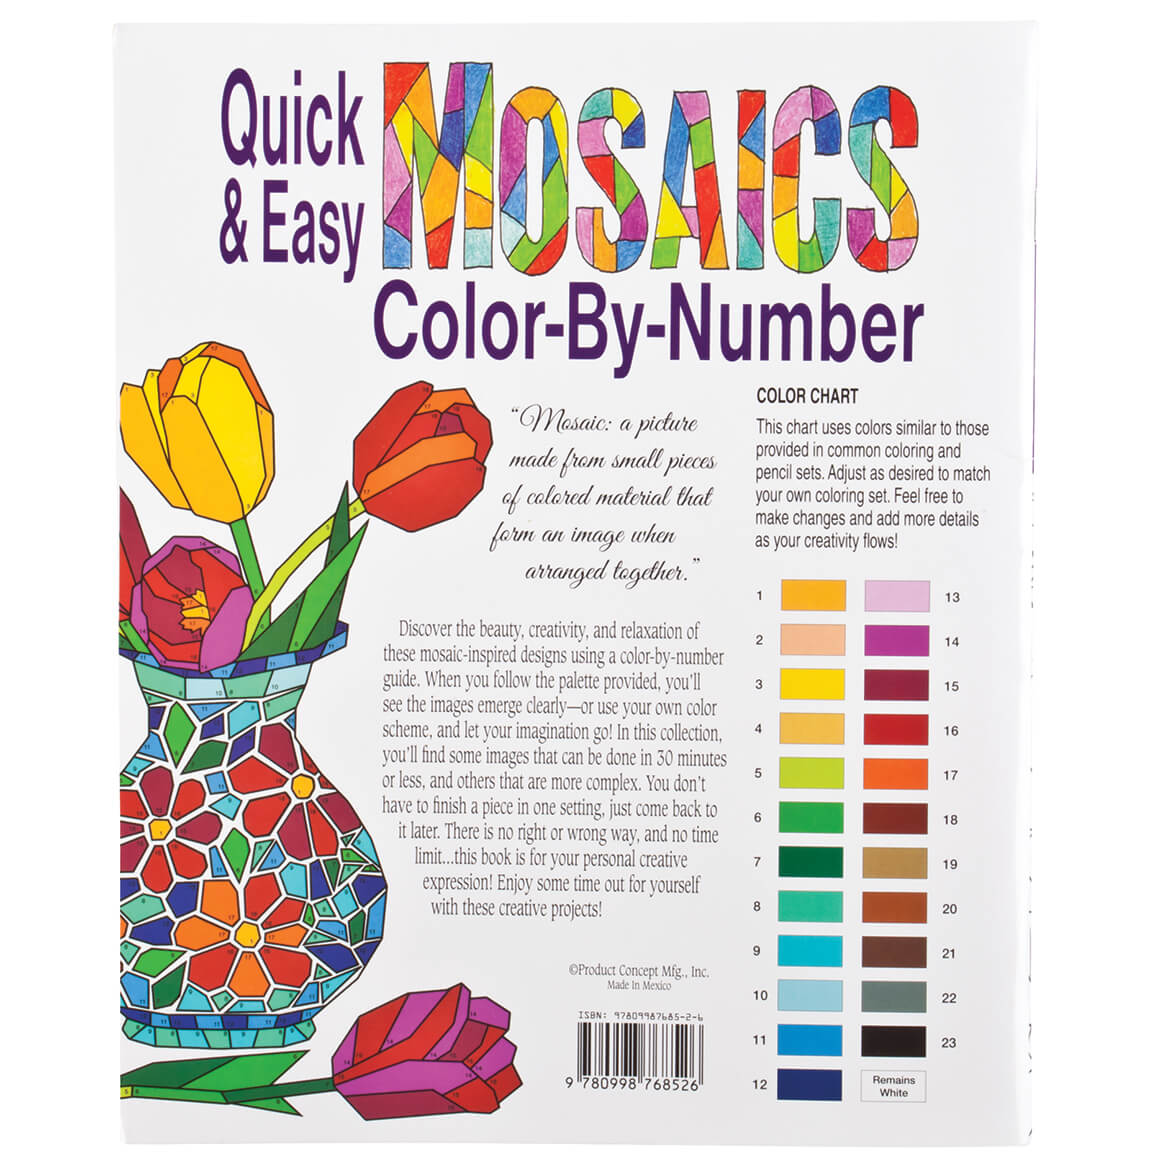 Quick and Easy Mosaic Coloring Book - Color By Number - Miles Kimball